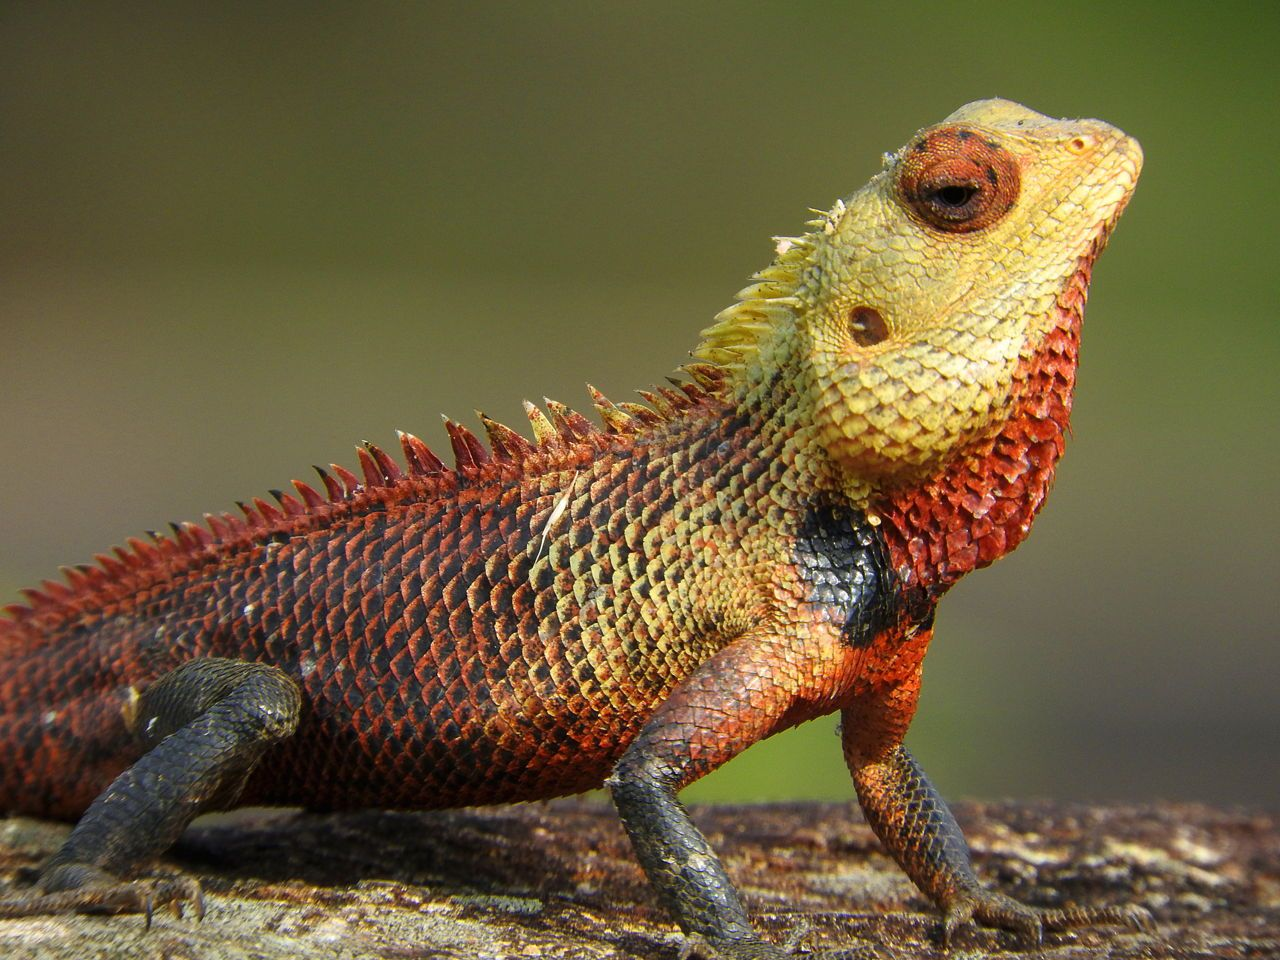 The Habitat of Lizards is Nothing Like You'd Expect! Find